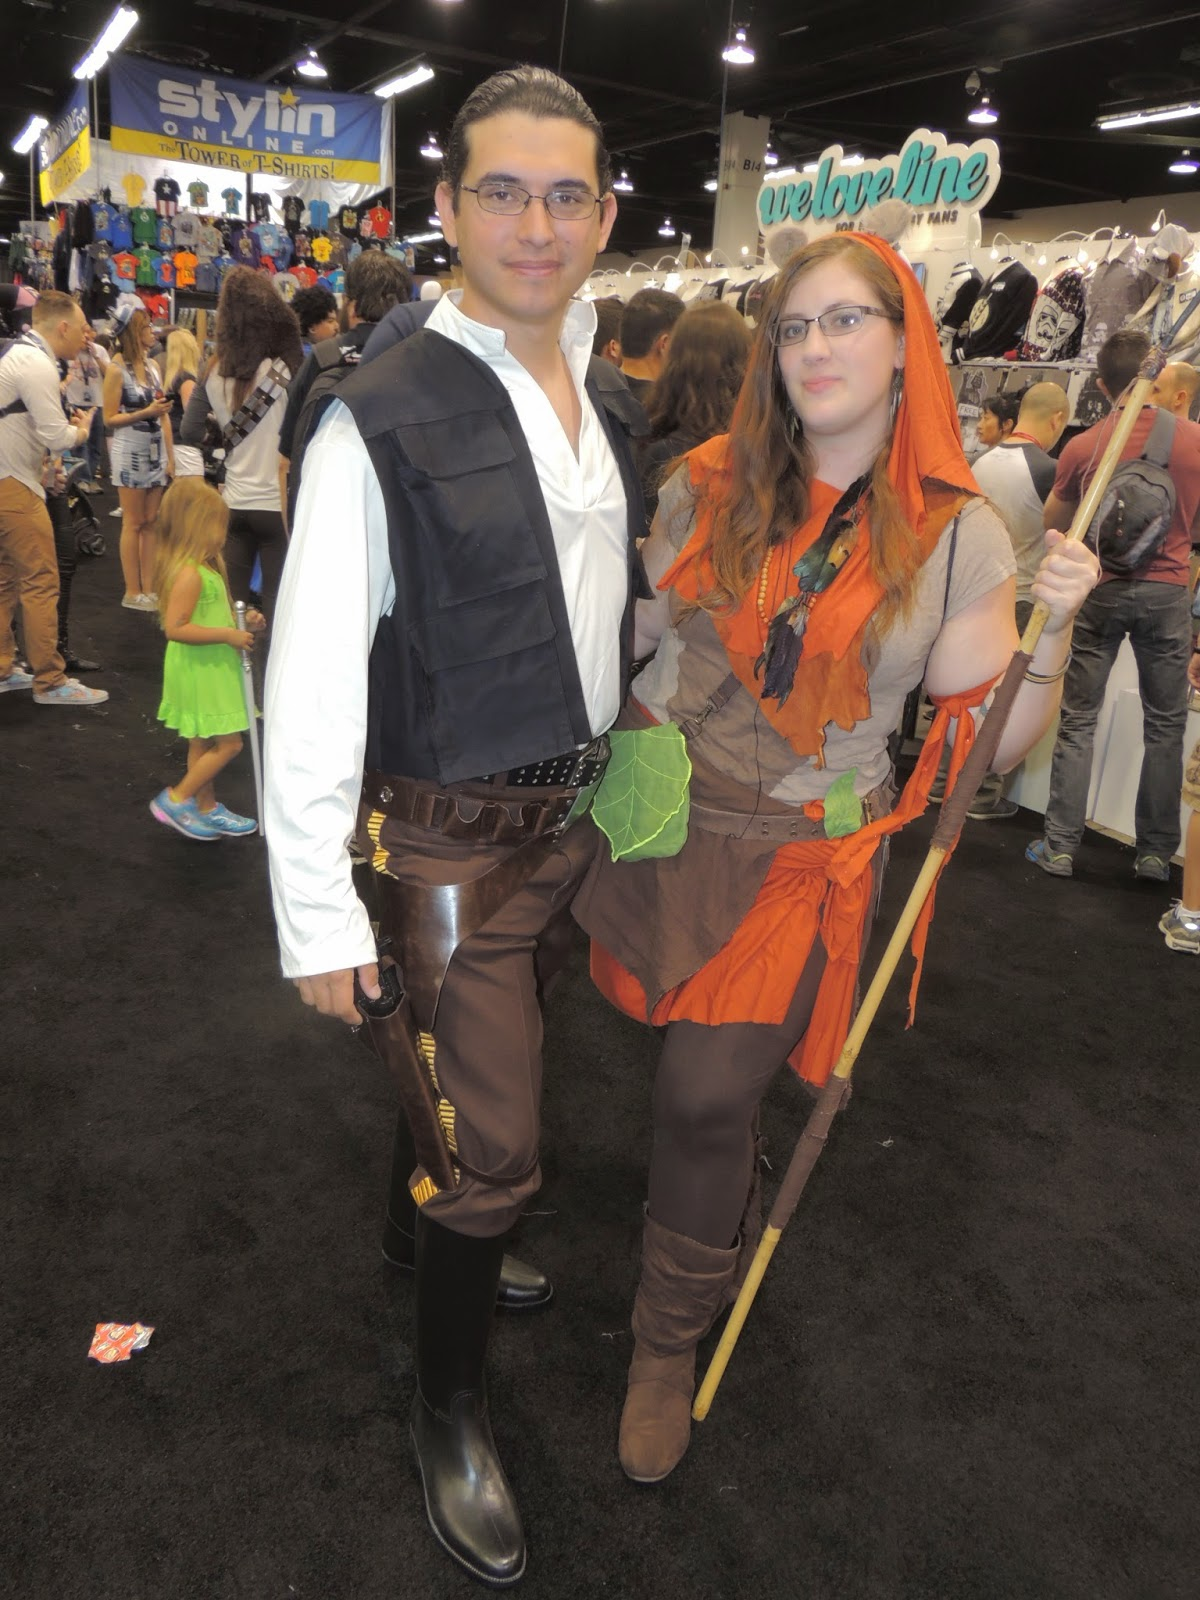 han-solo-ewok-star-wars-cosplay-celebration-anaheim